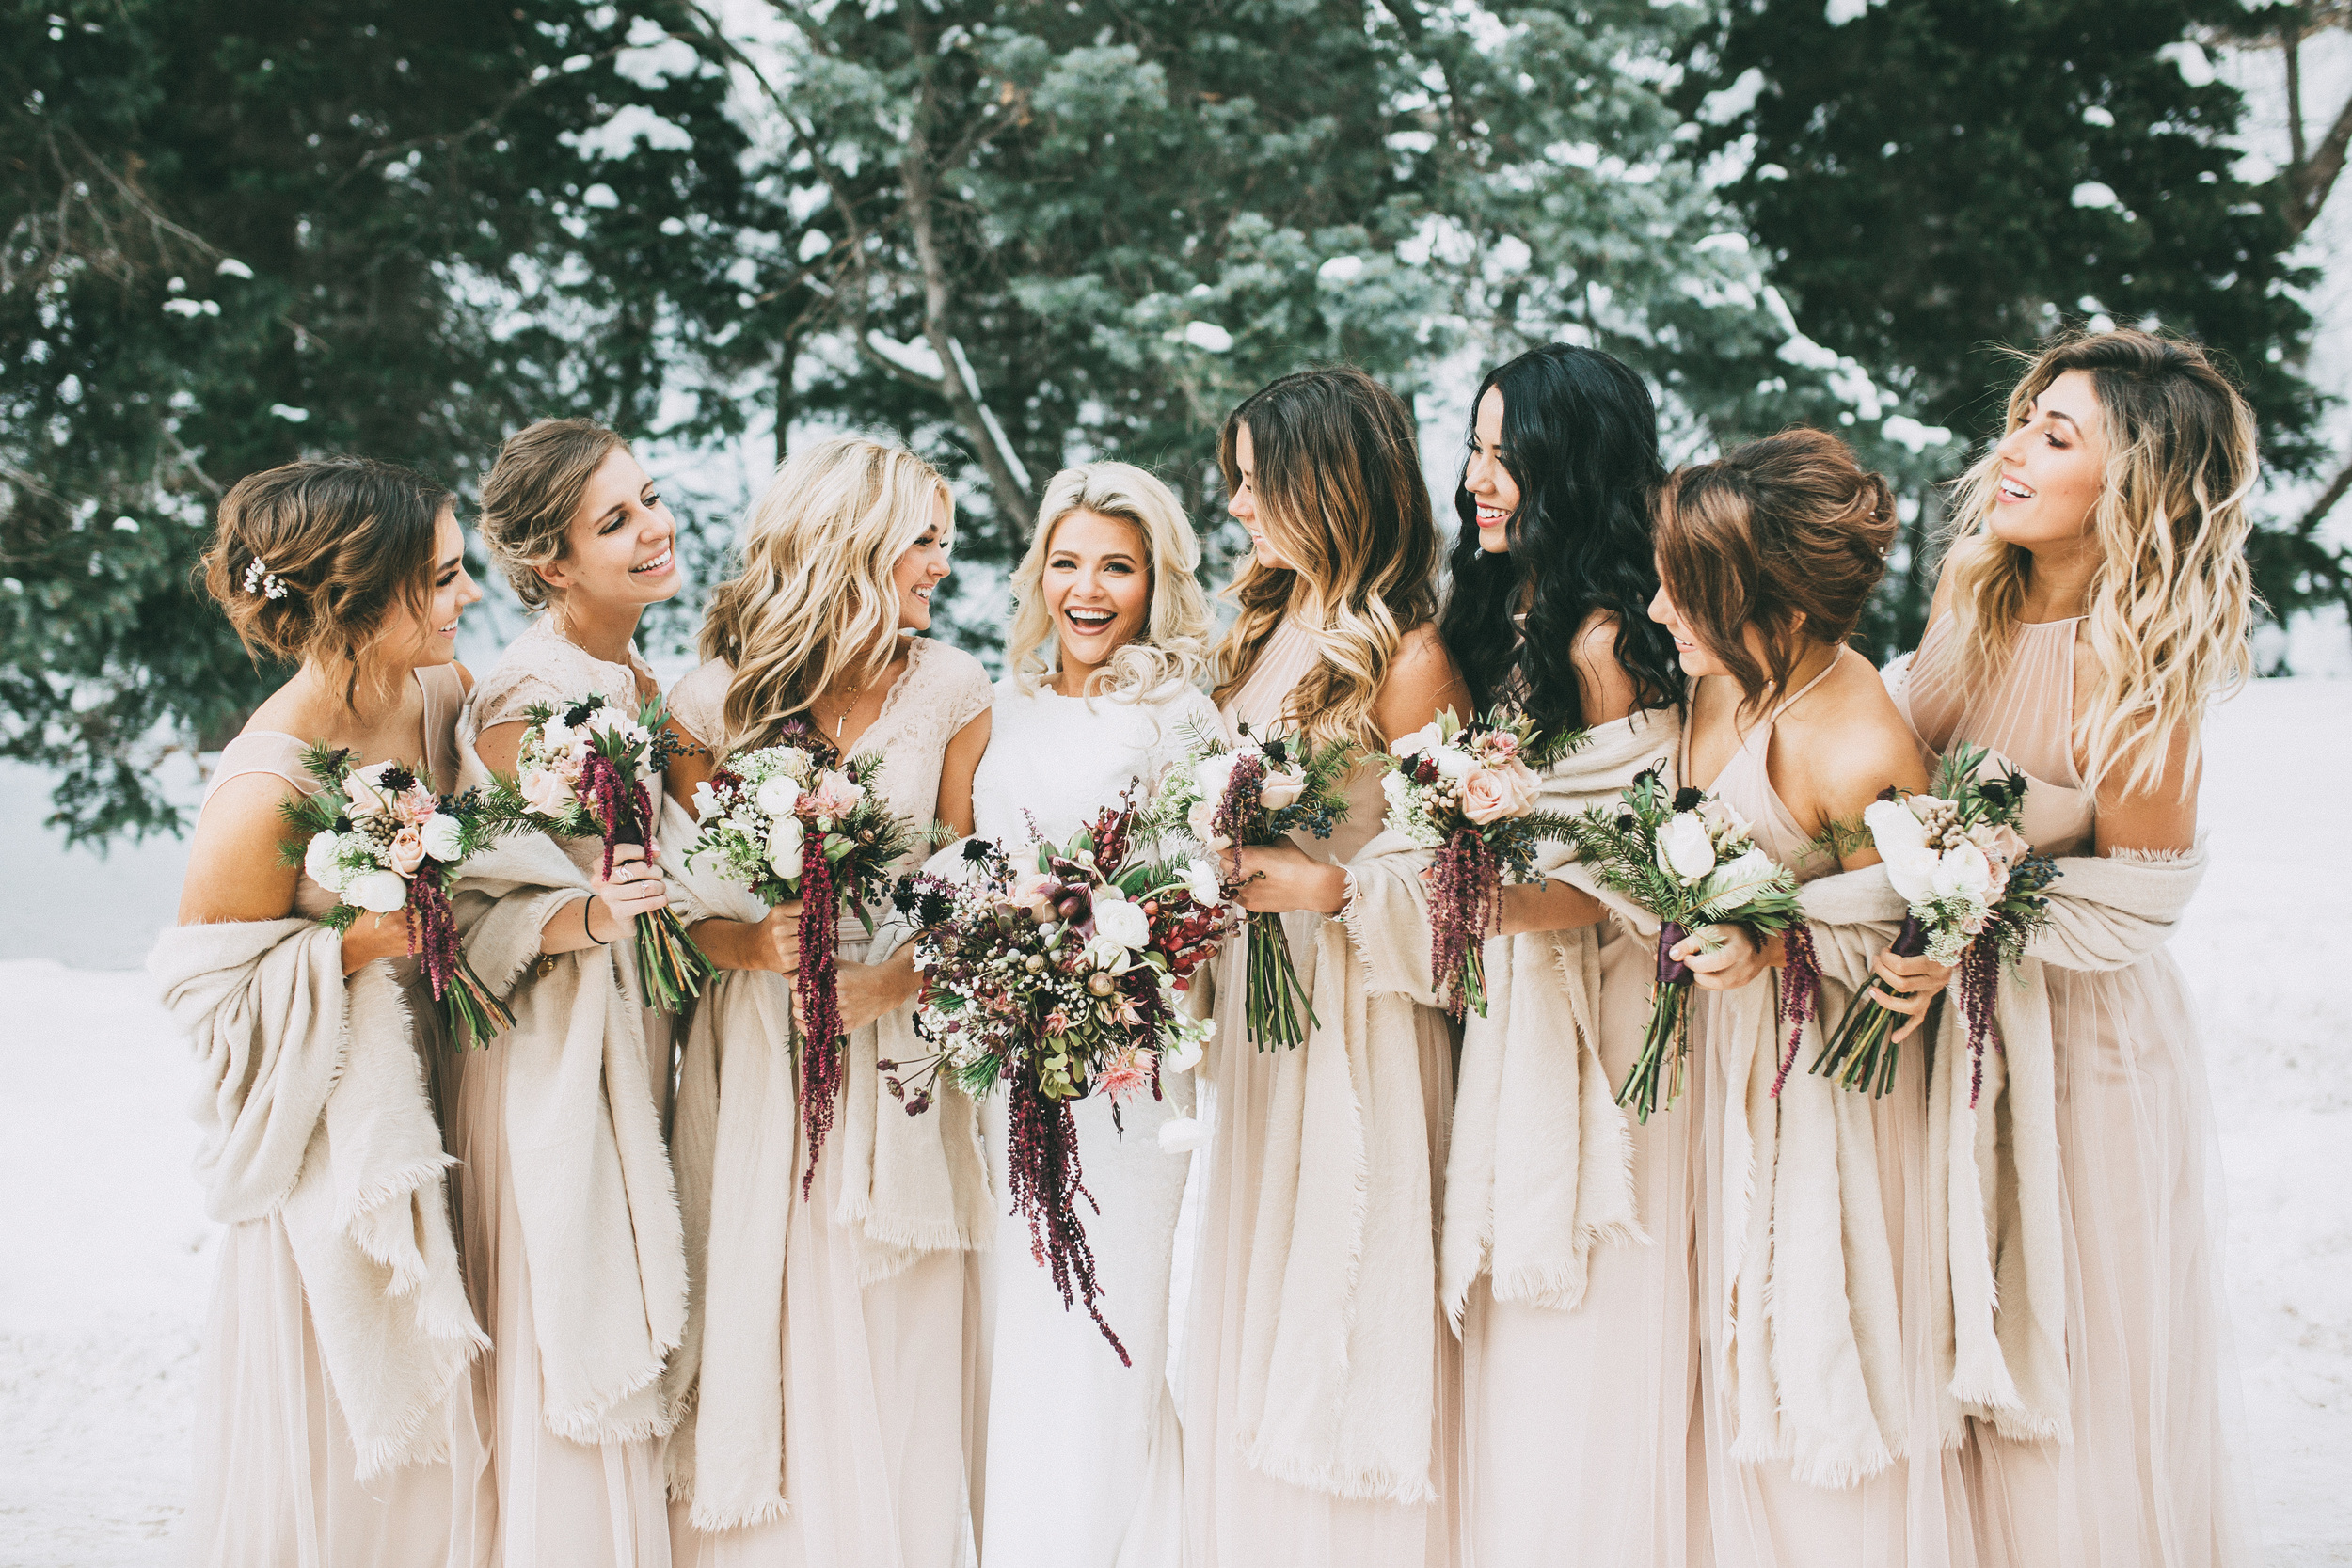 Choosing a winter wedding date means that all of your closest friends will be able to attend, since schedules are often less hectic than they are in the warmer months. Photo Source:  India Earl Photography .